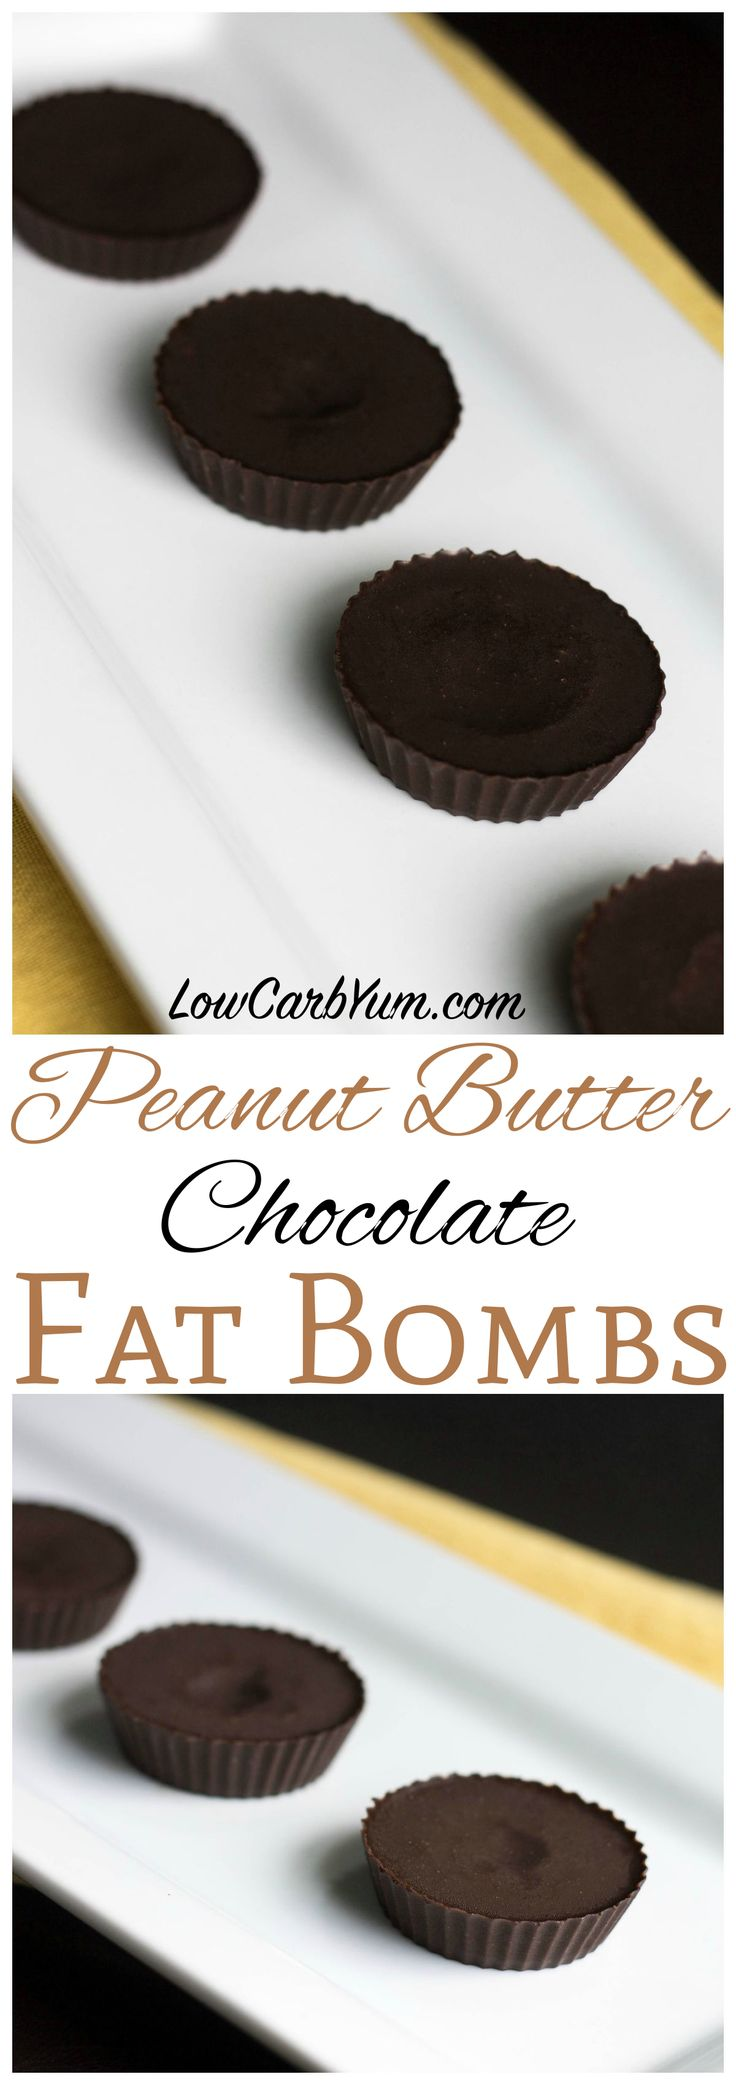 Are you a lover of chocolate and peanut butter? Satisfy your craving with this low carb chocolate peanut butter fat bomb recipe. A perfect ketogenic snack!